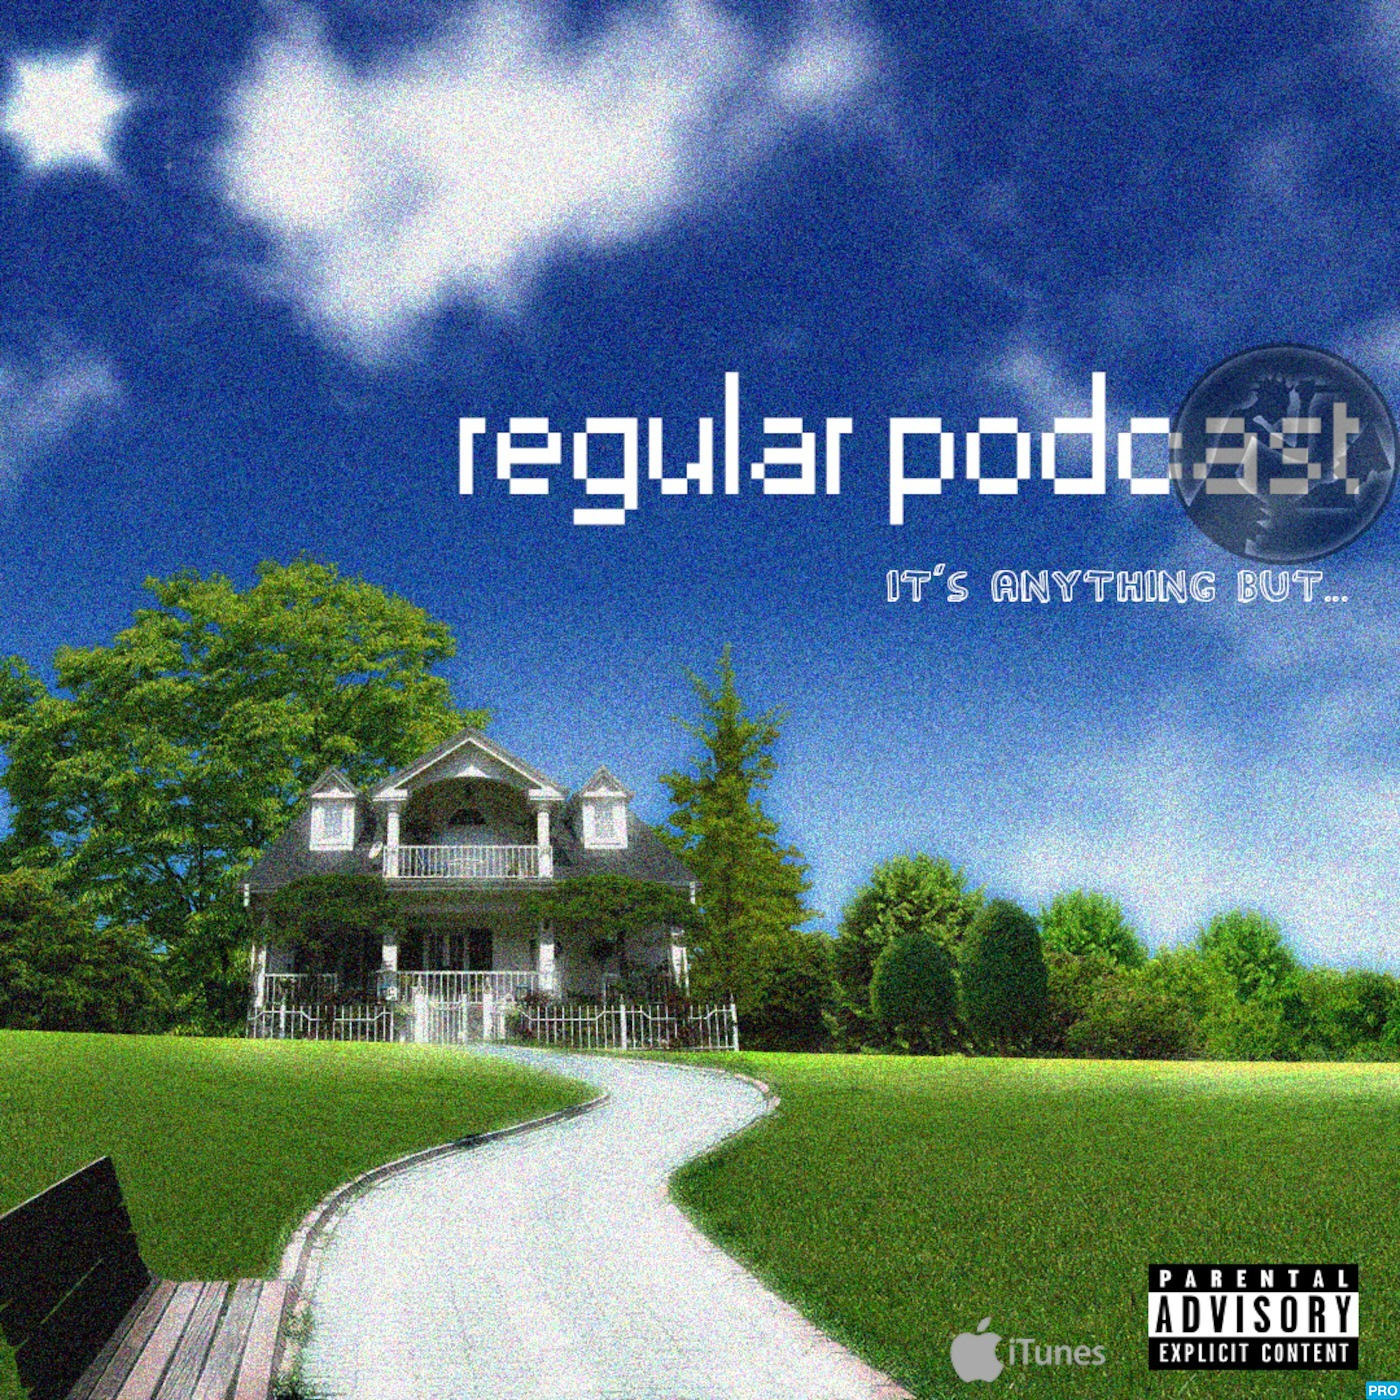 REGULAR PODCAST